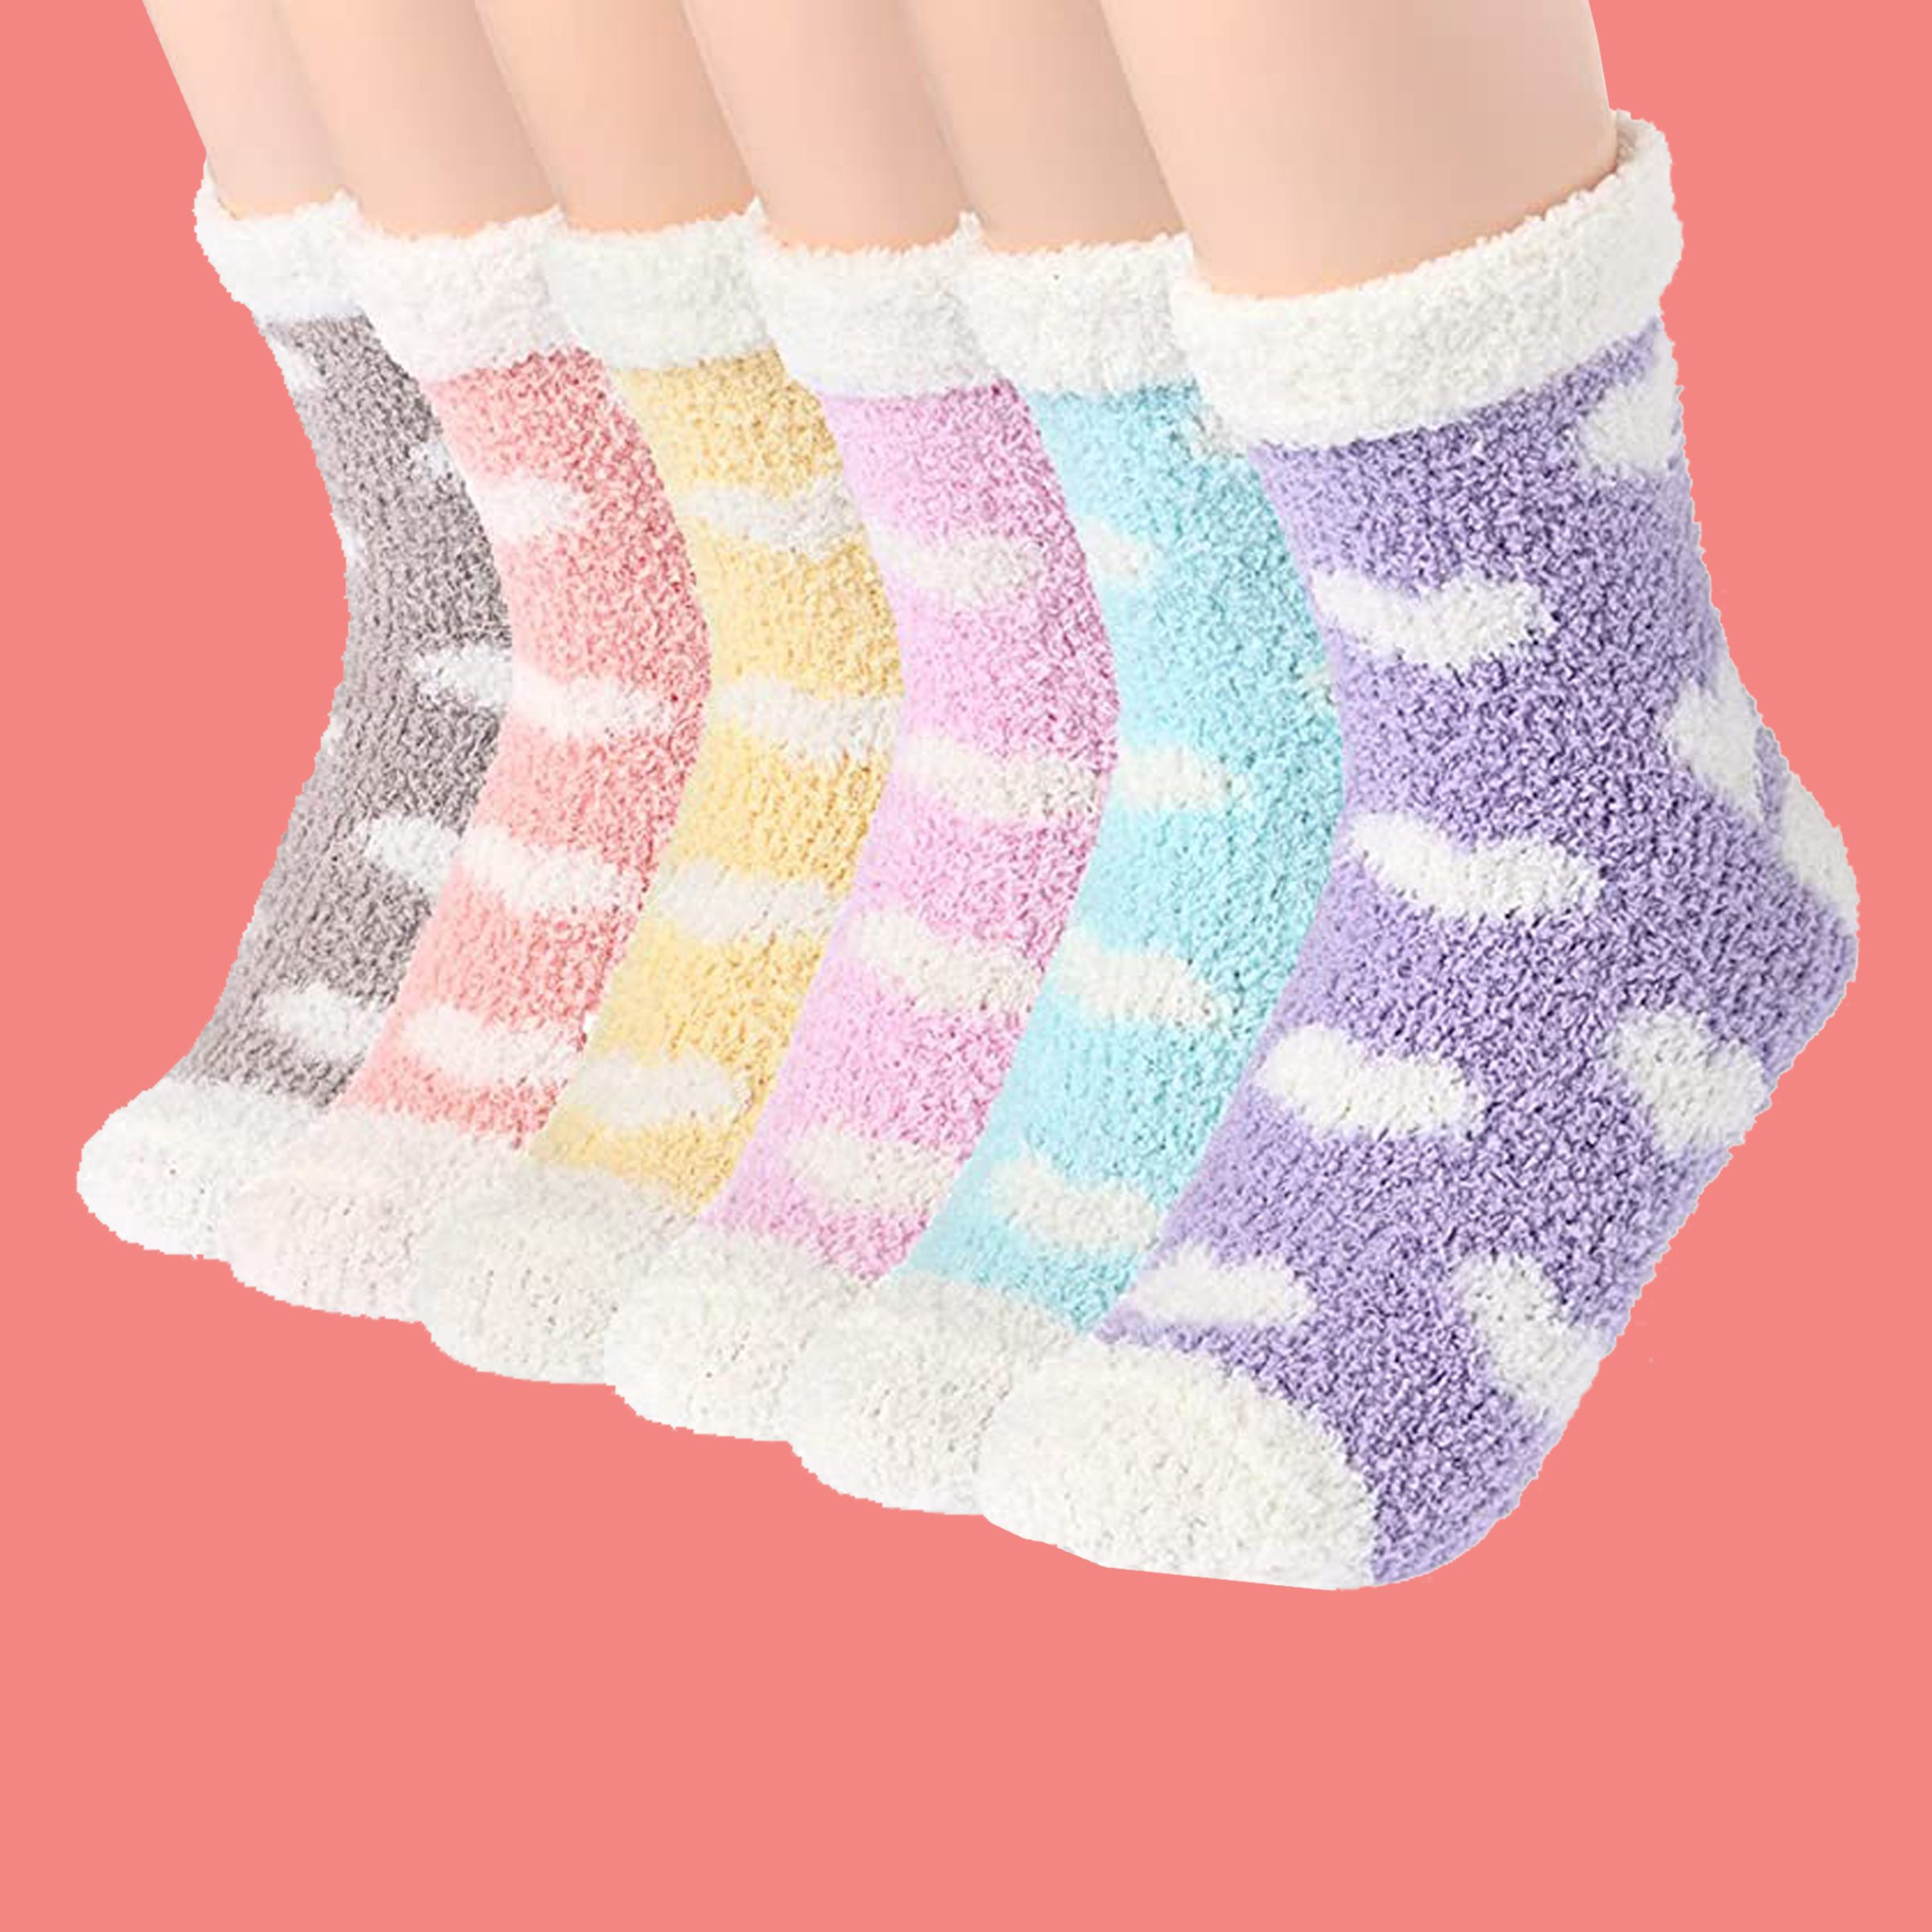 slipper socks with hearts on them